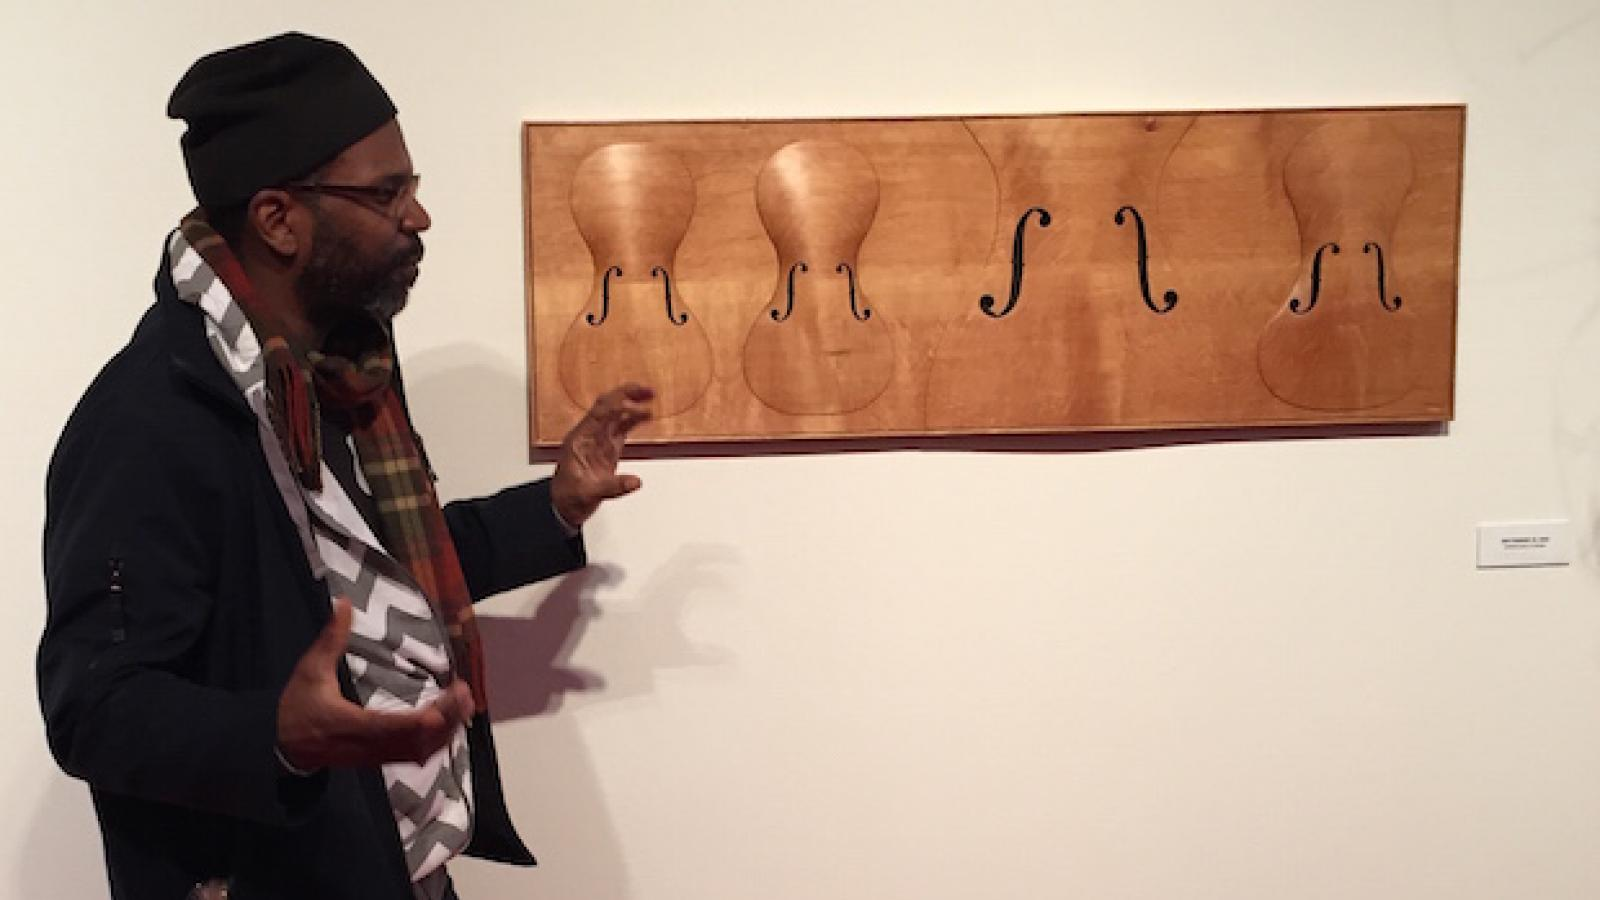 paul_rucker_explains_wood_carvings_during_art_studio_tour